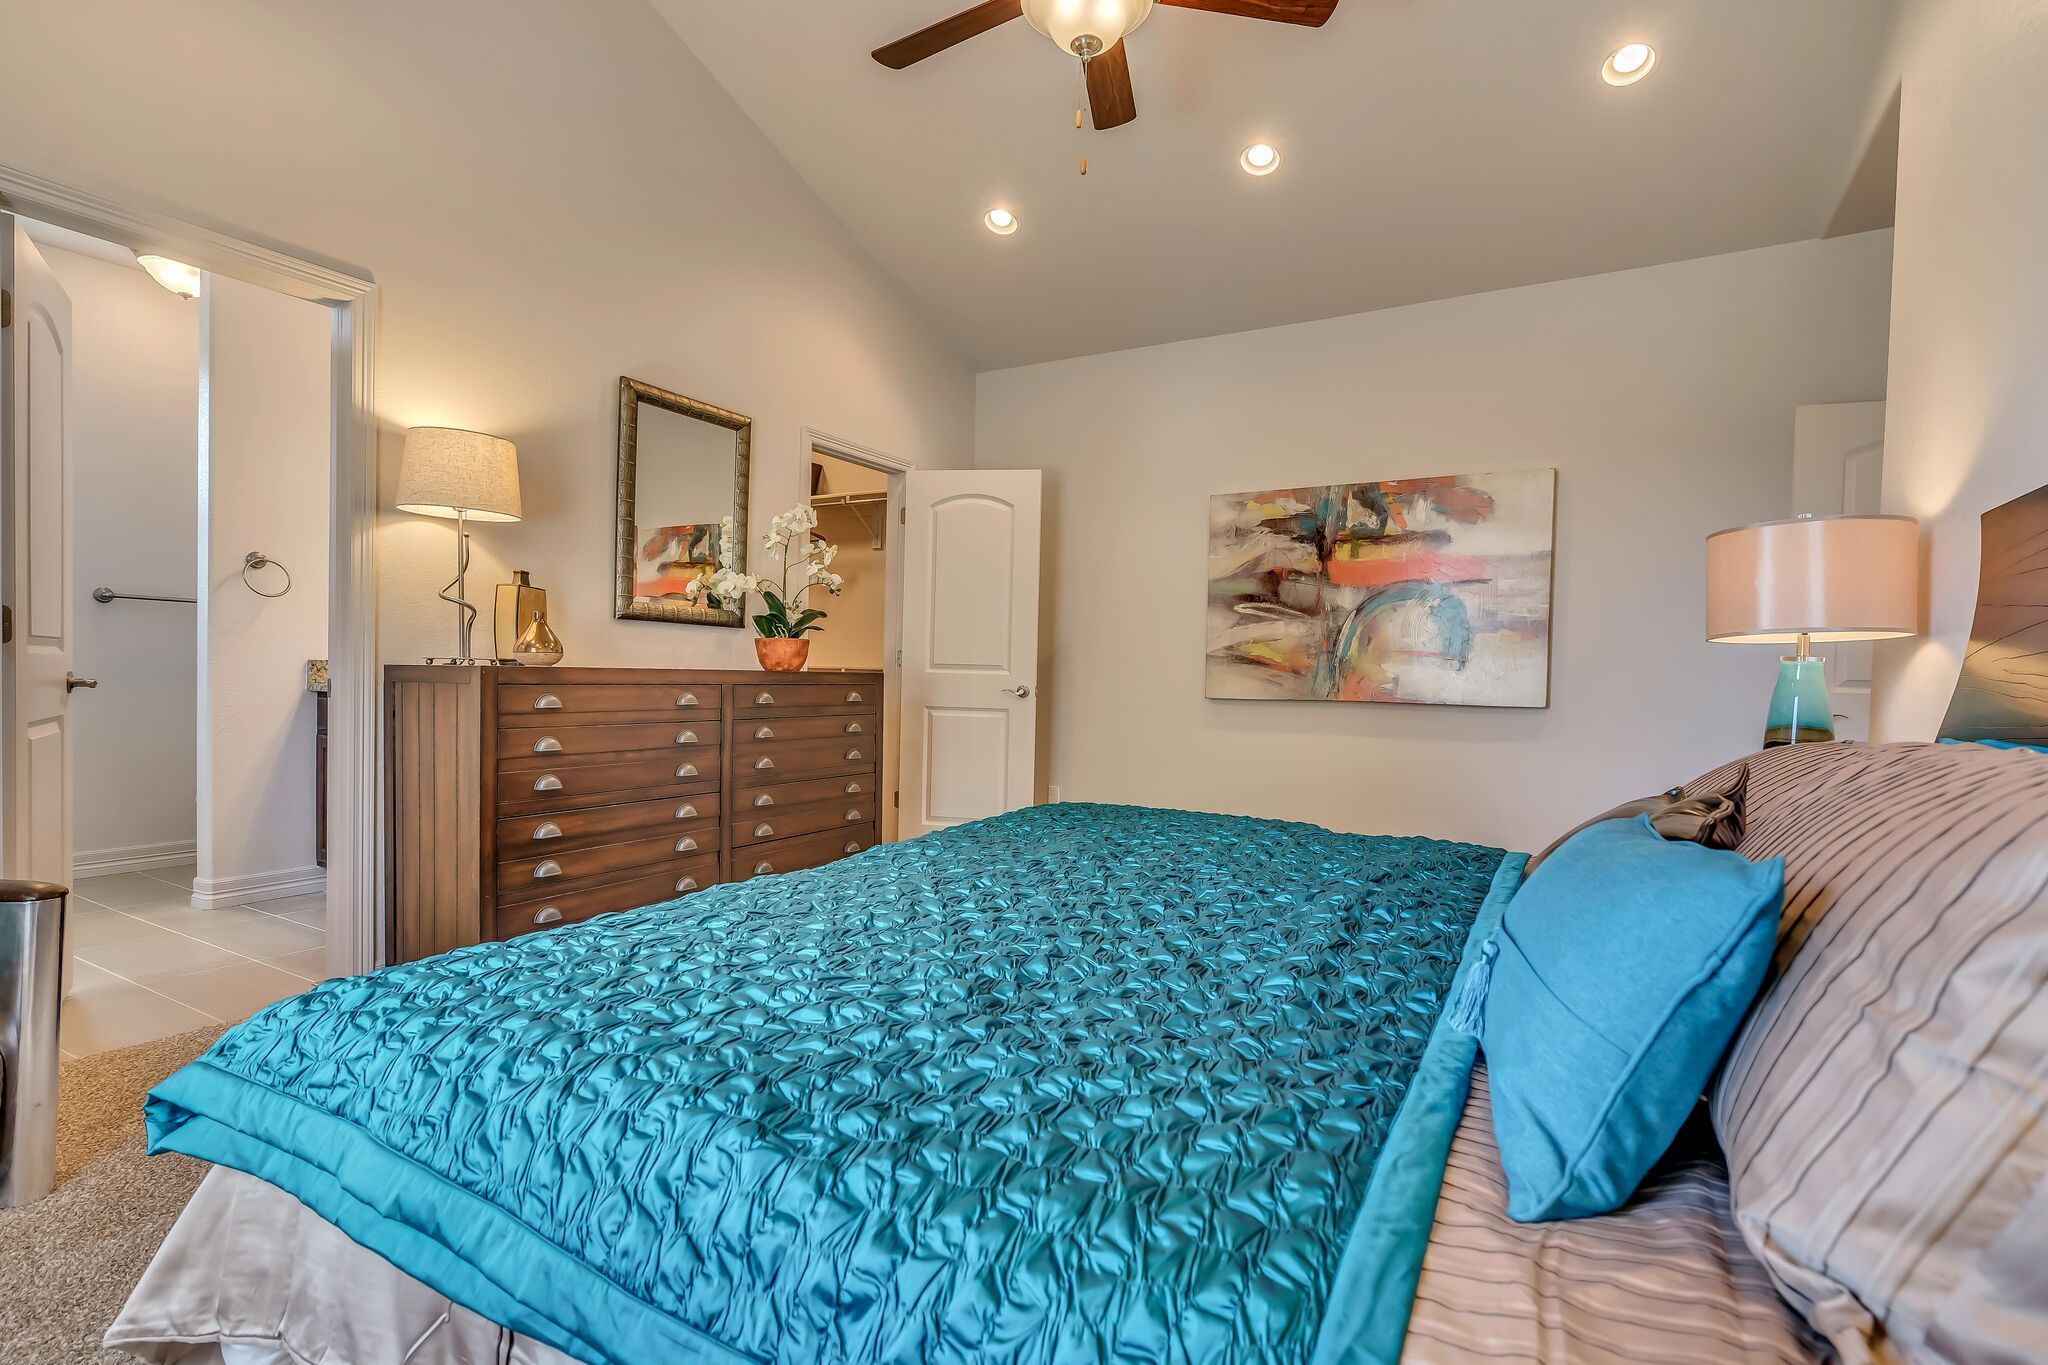 Bedroom featured in the Sage at Blackstone Ranch By Pauls Homes in Denver, CO